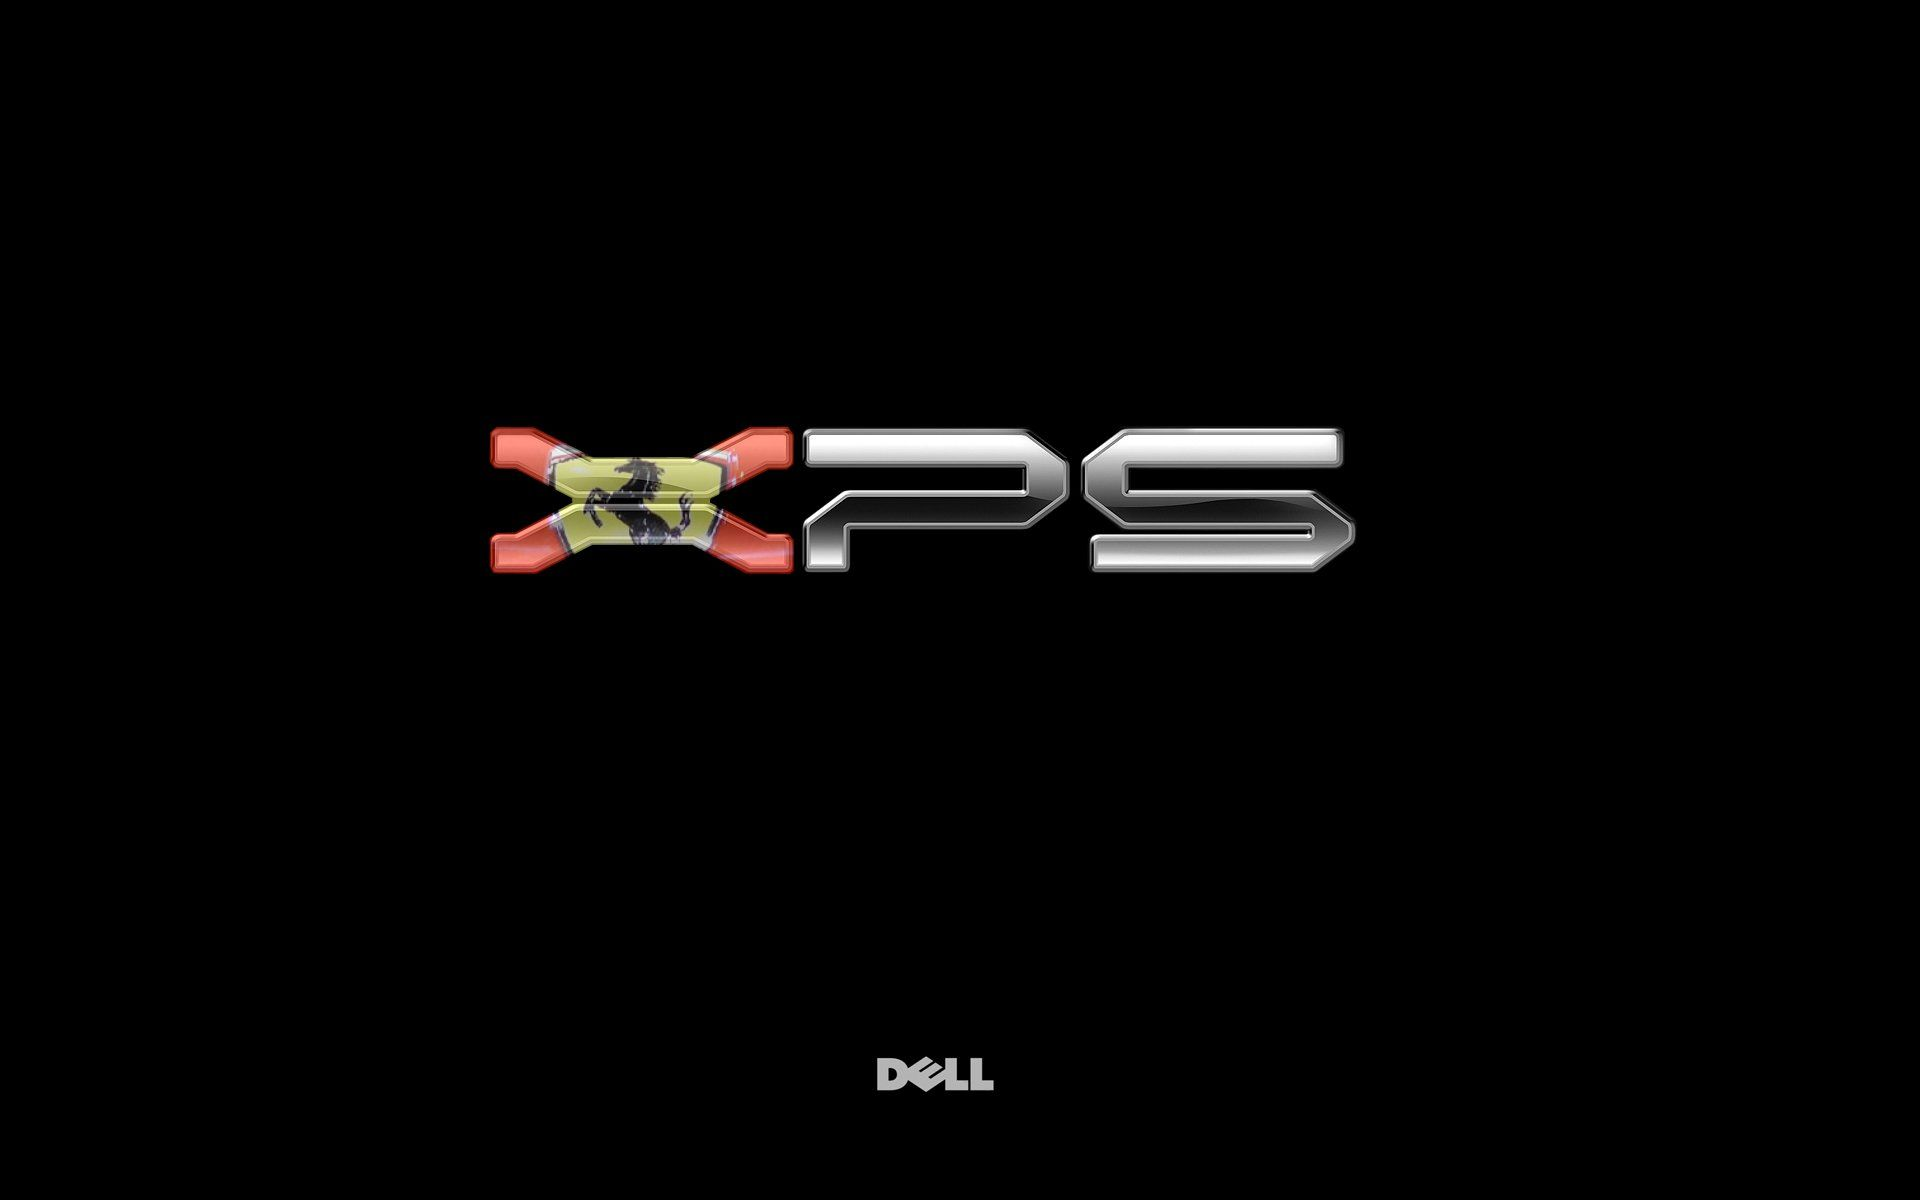 Dell Xps Logo - Best Pictures Of Dell Ftpimage Org